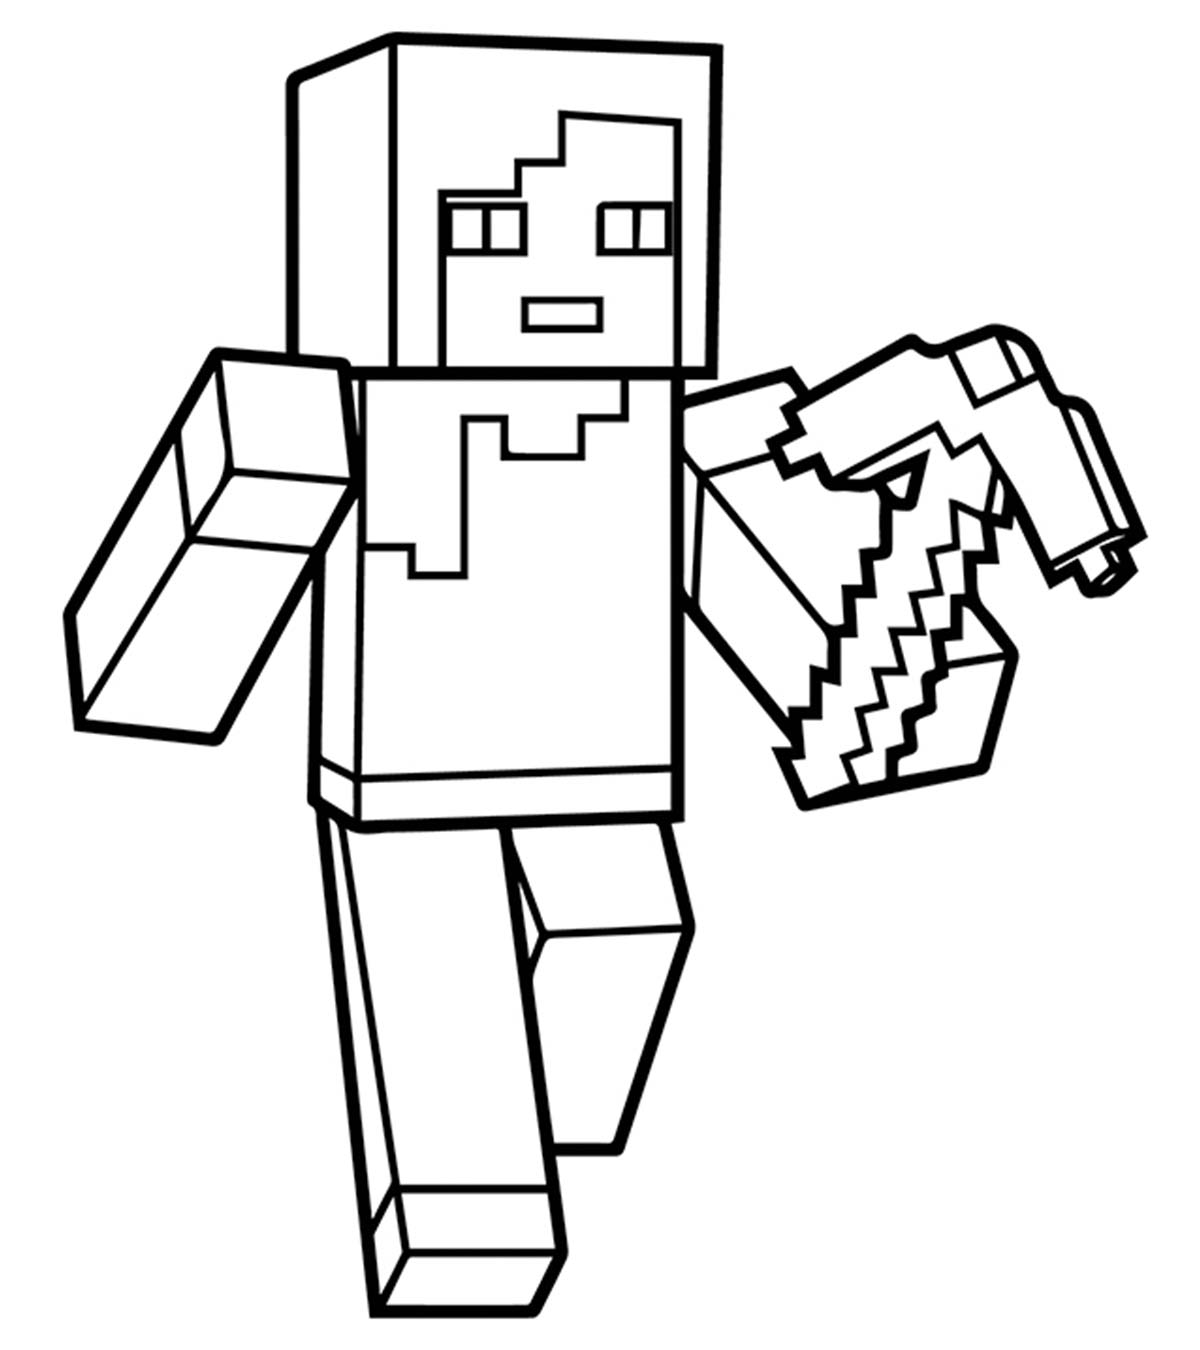 minecraft golden apple coloring pages galleons lap july 2014 golden minecraft apple coloring pages